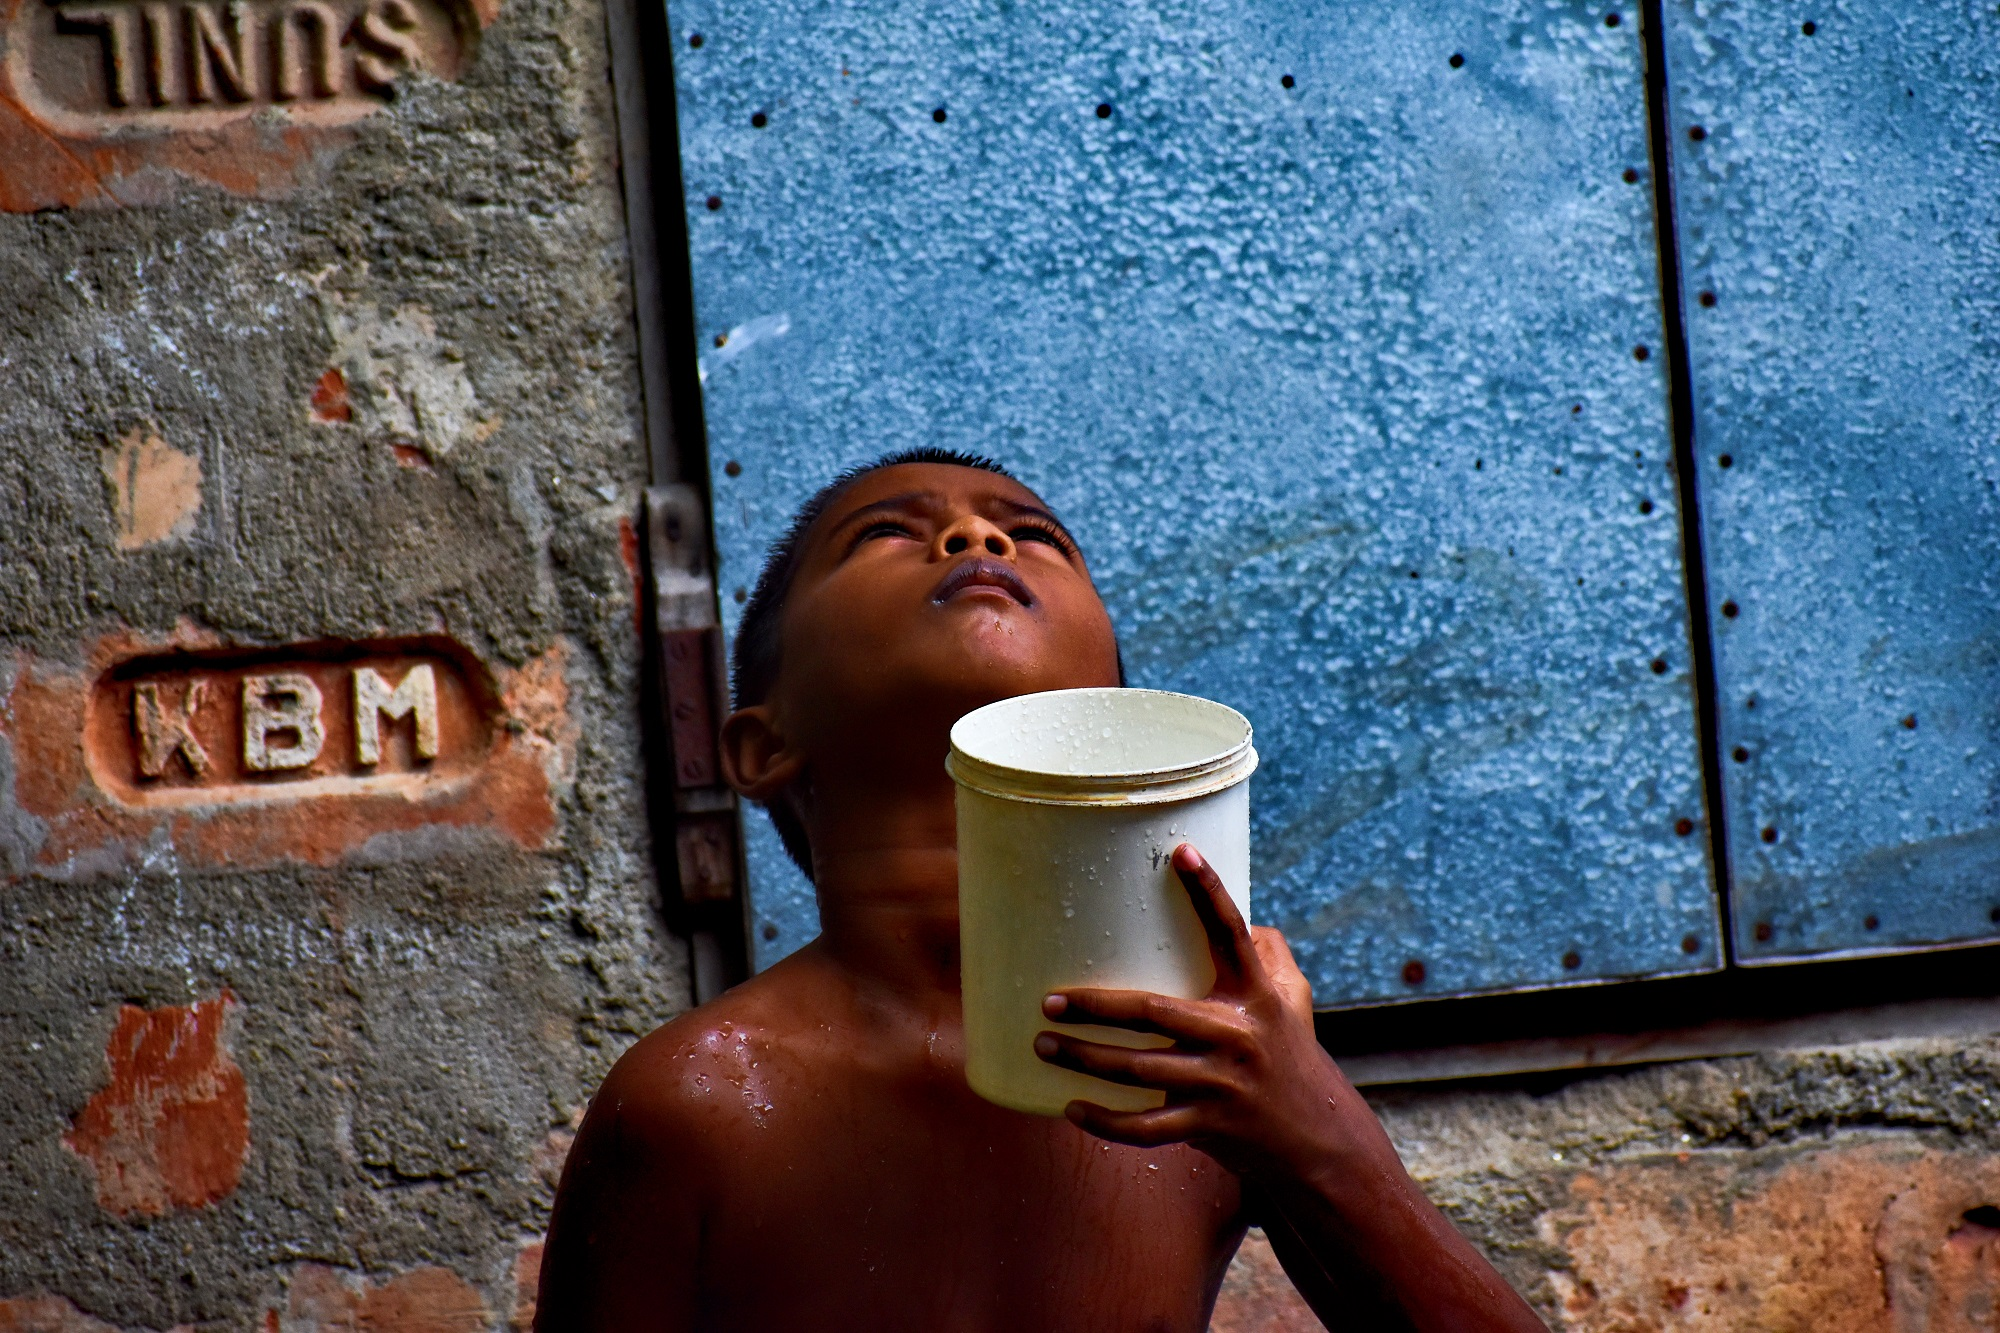 This kid was bathing in the rain when it suddenly stopped. Then he brought out his mug to catch the next drop that would fall. In the picture, he can be seen looking eagerly at the clouds for the next drop.